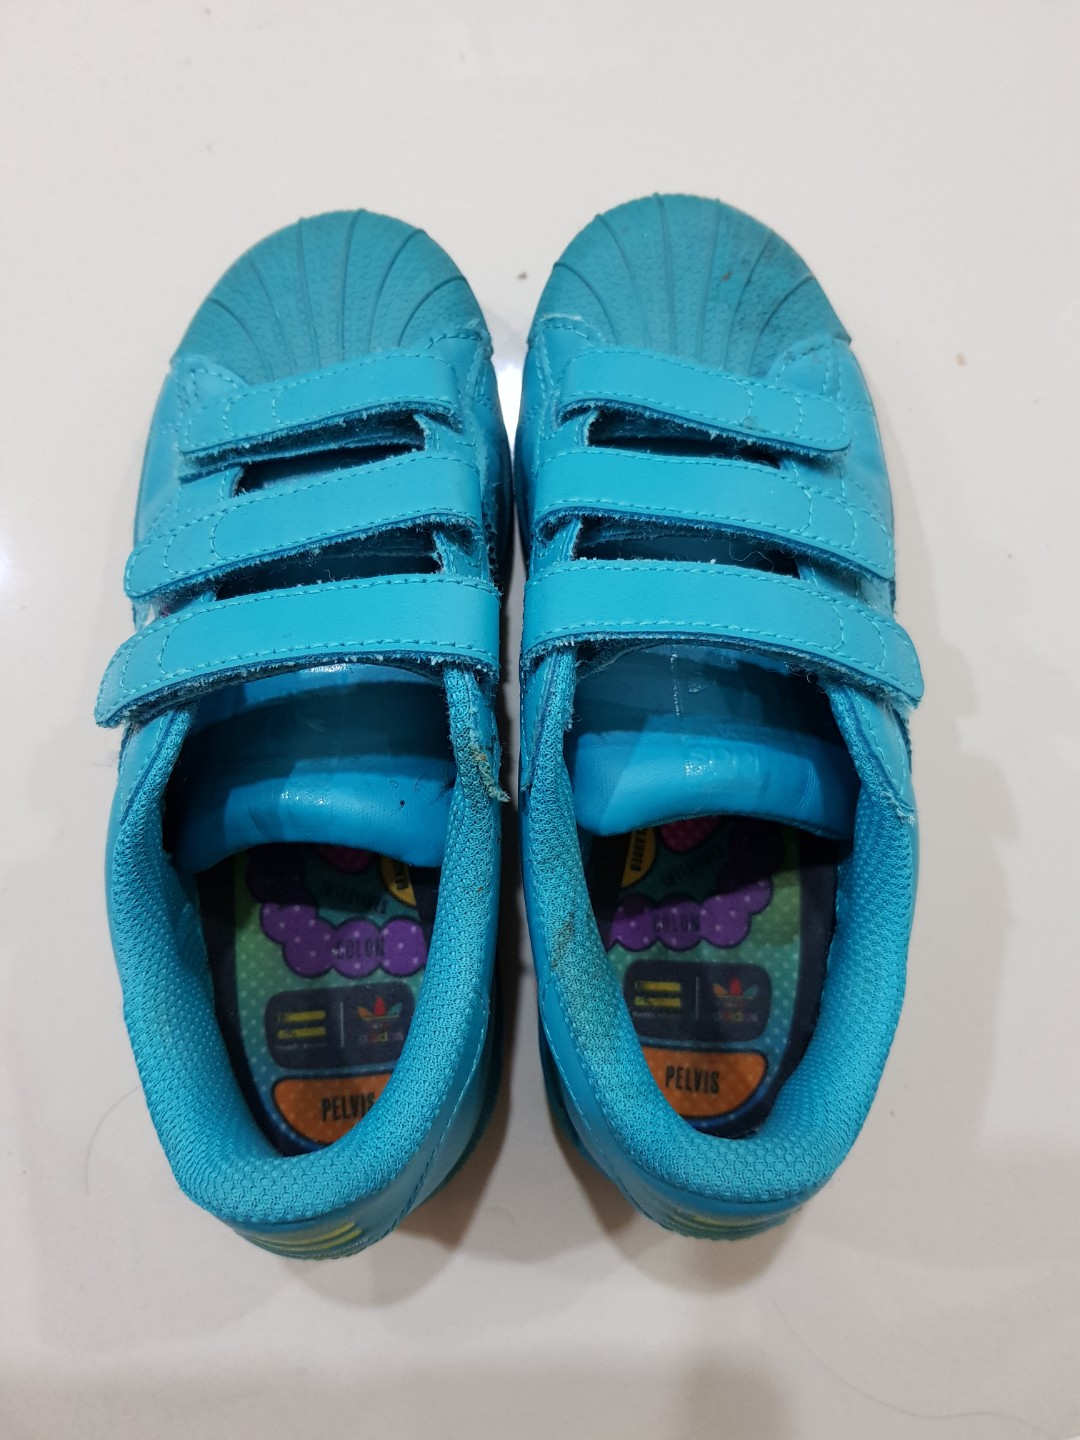 916d2c373 Adidas Toddler Superstar Supercolor Pharrell Williams Limited Edition